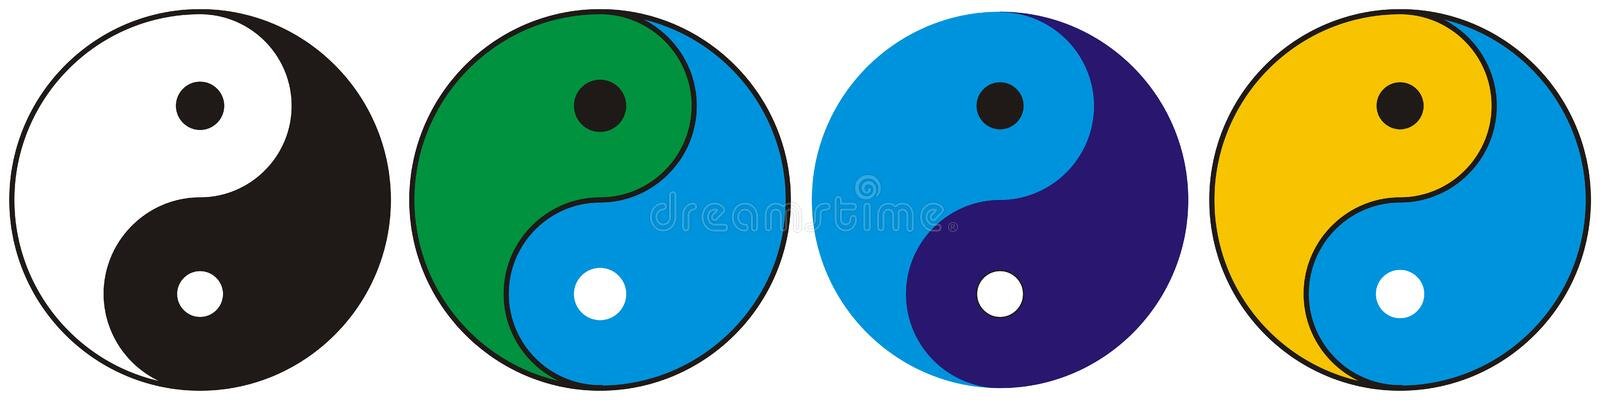 Ying Yang - vecteur illustration stock